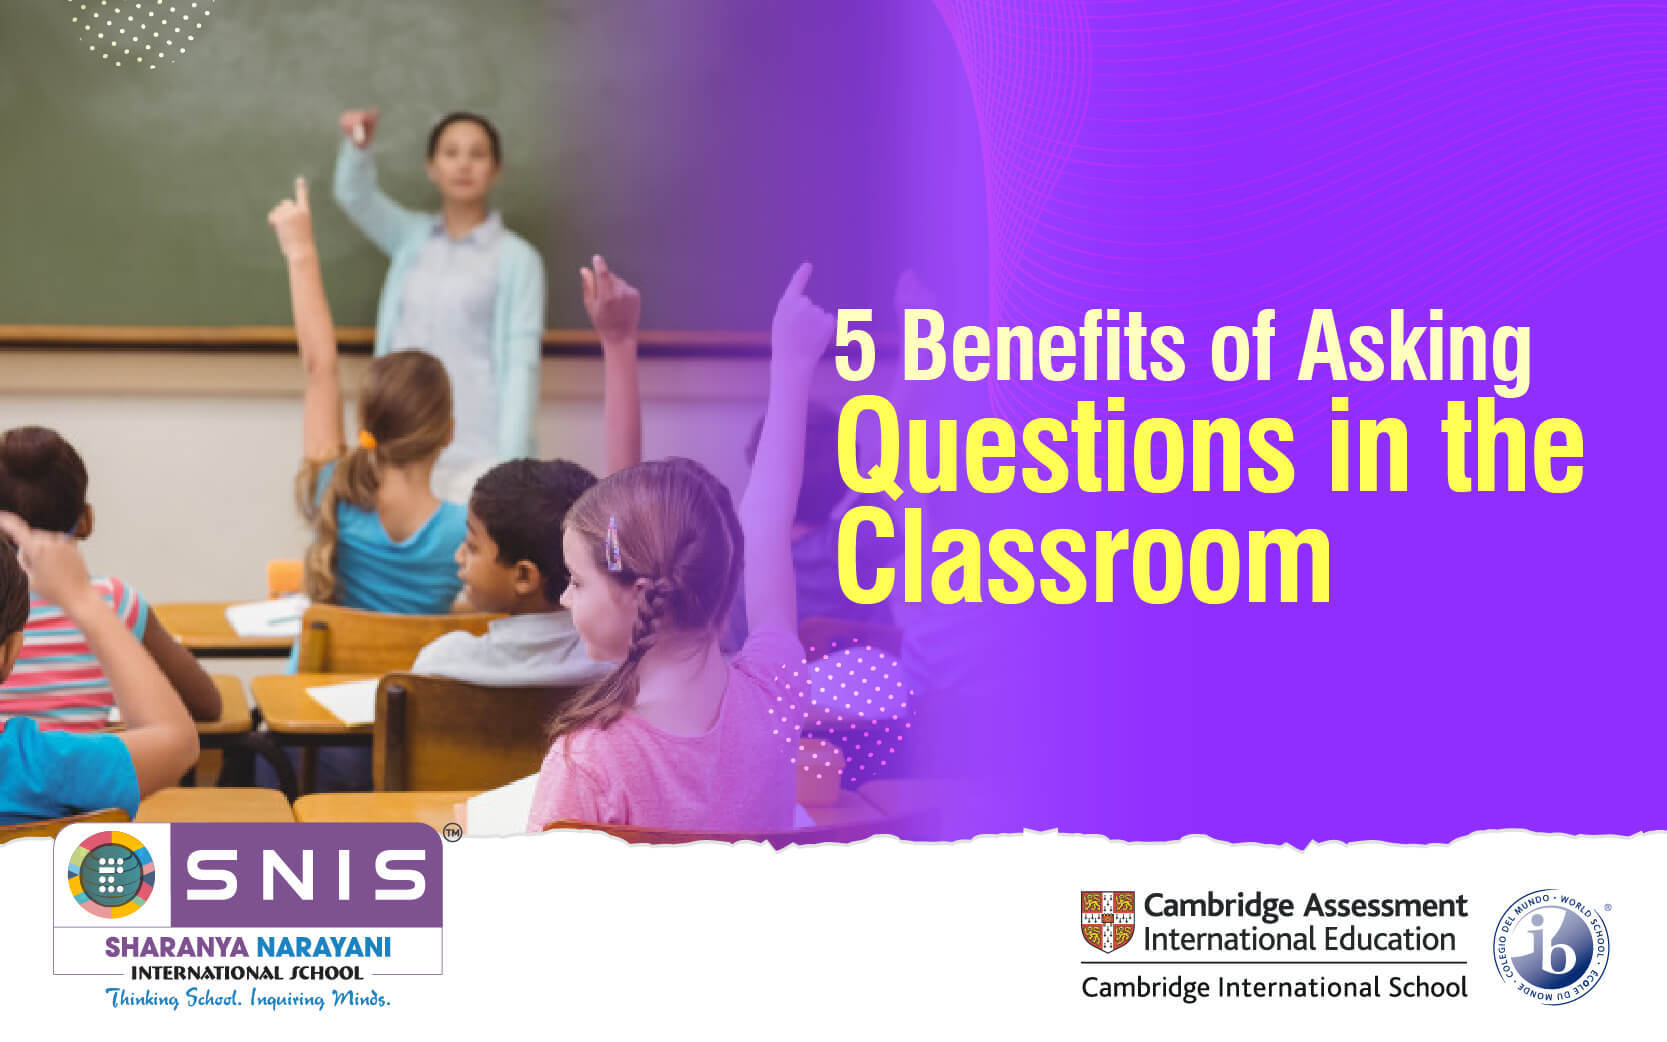 5 Benefits of Asking Questions in the Classroom by snis Top boarding schools in bangalore